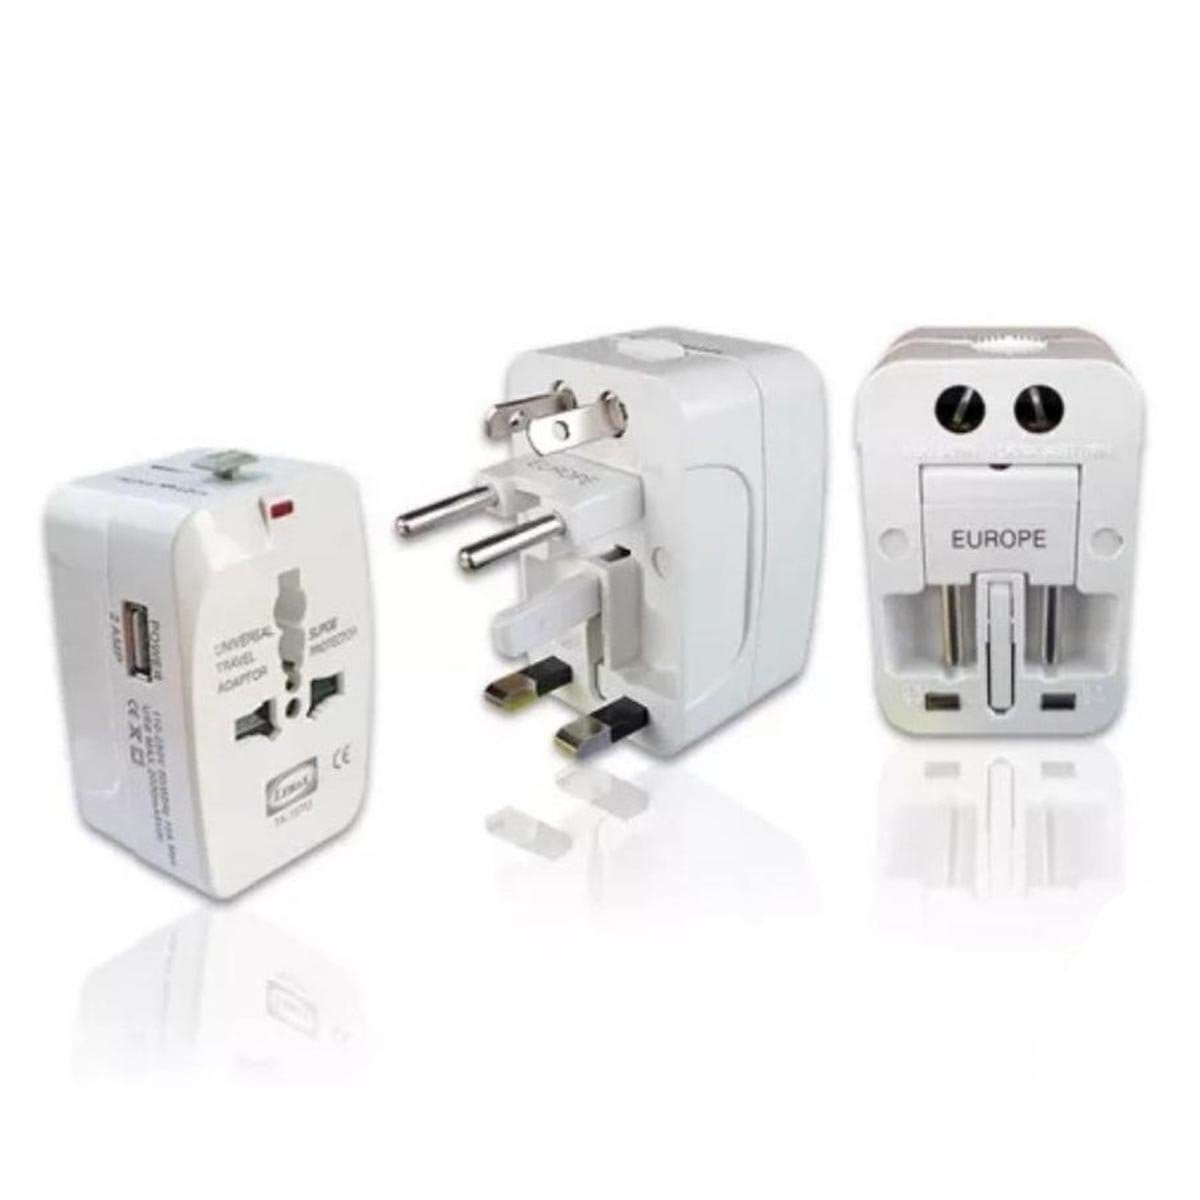 LEMAX Universal Travel Adapter TA-106